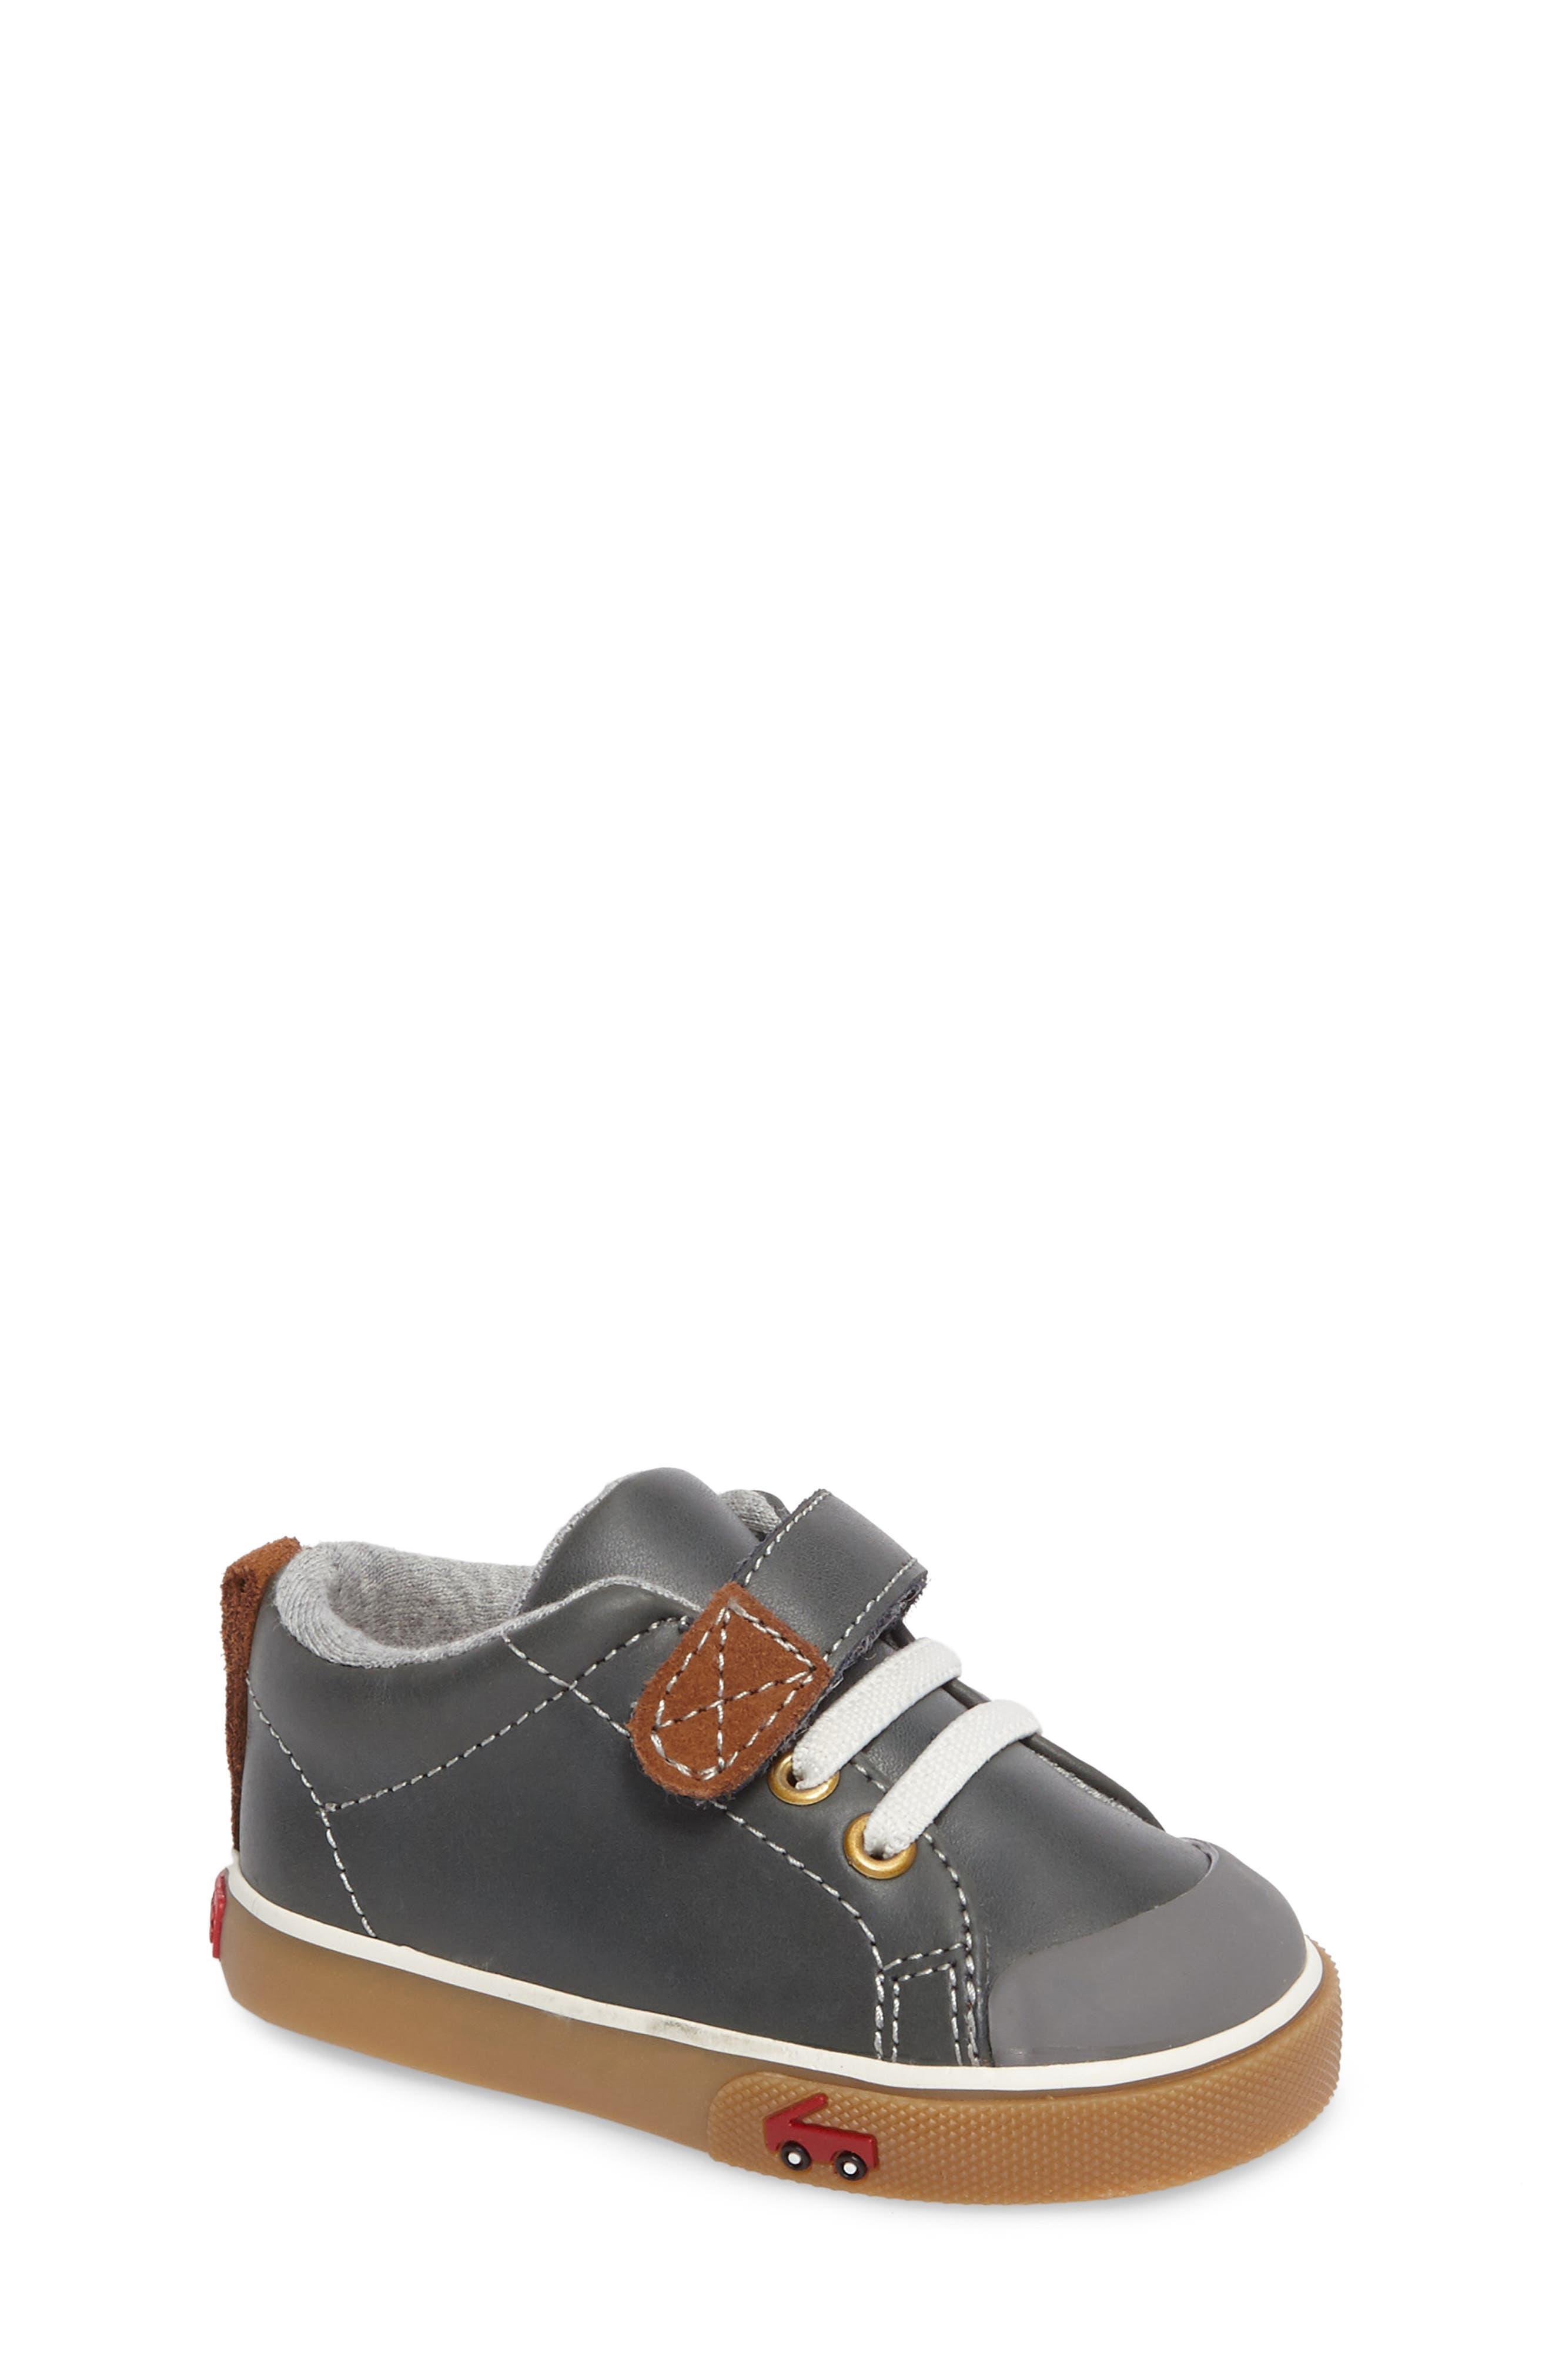 Stevie II Sneaker,                             Main thumbnail 1, color,                             GREY LEATHER